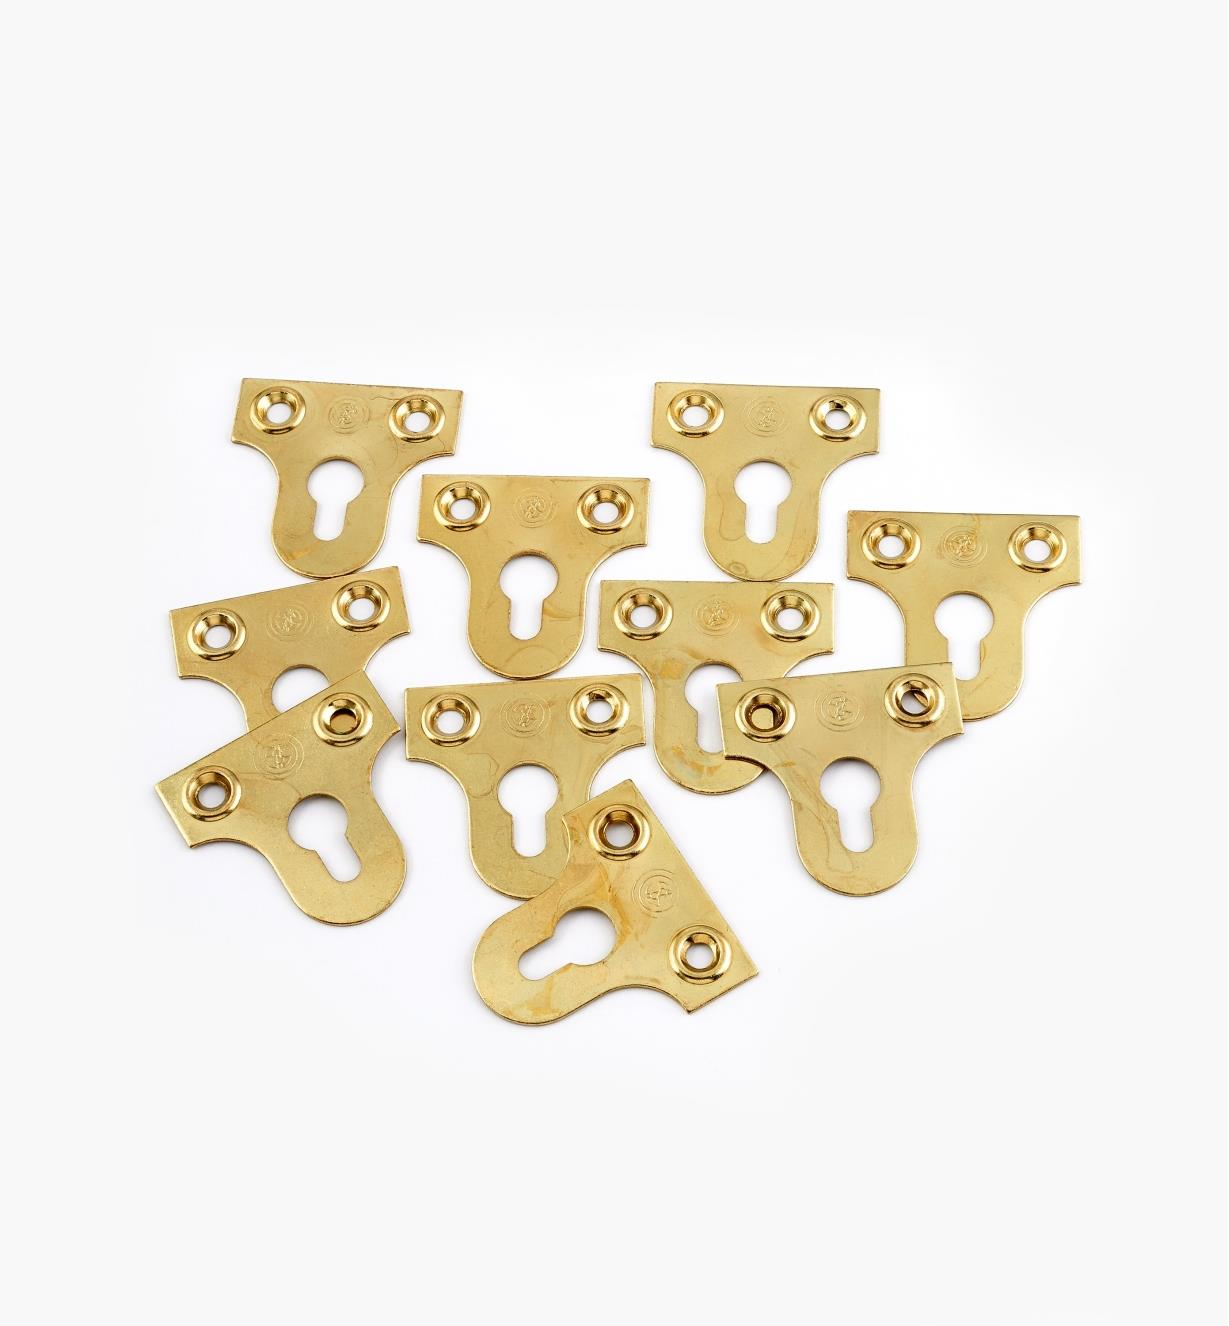 00S0620 - Lg. Rigid Hangers, pkg. of 10